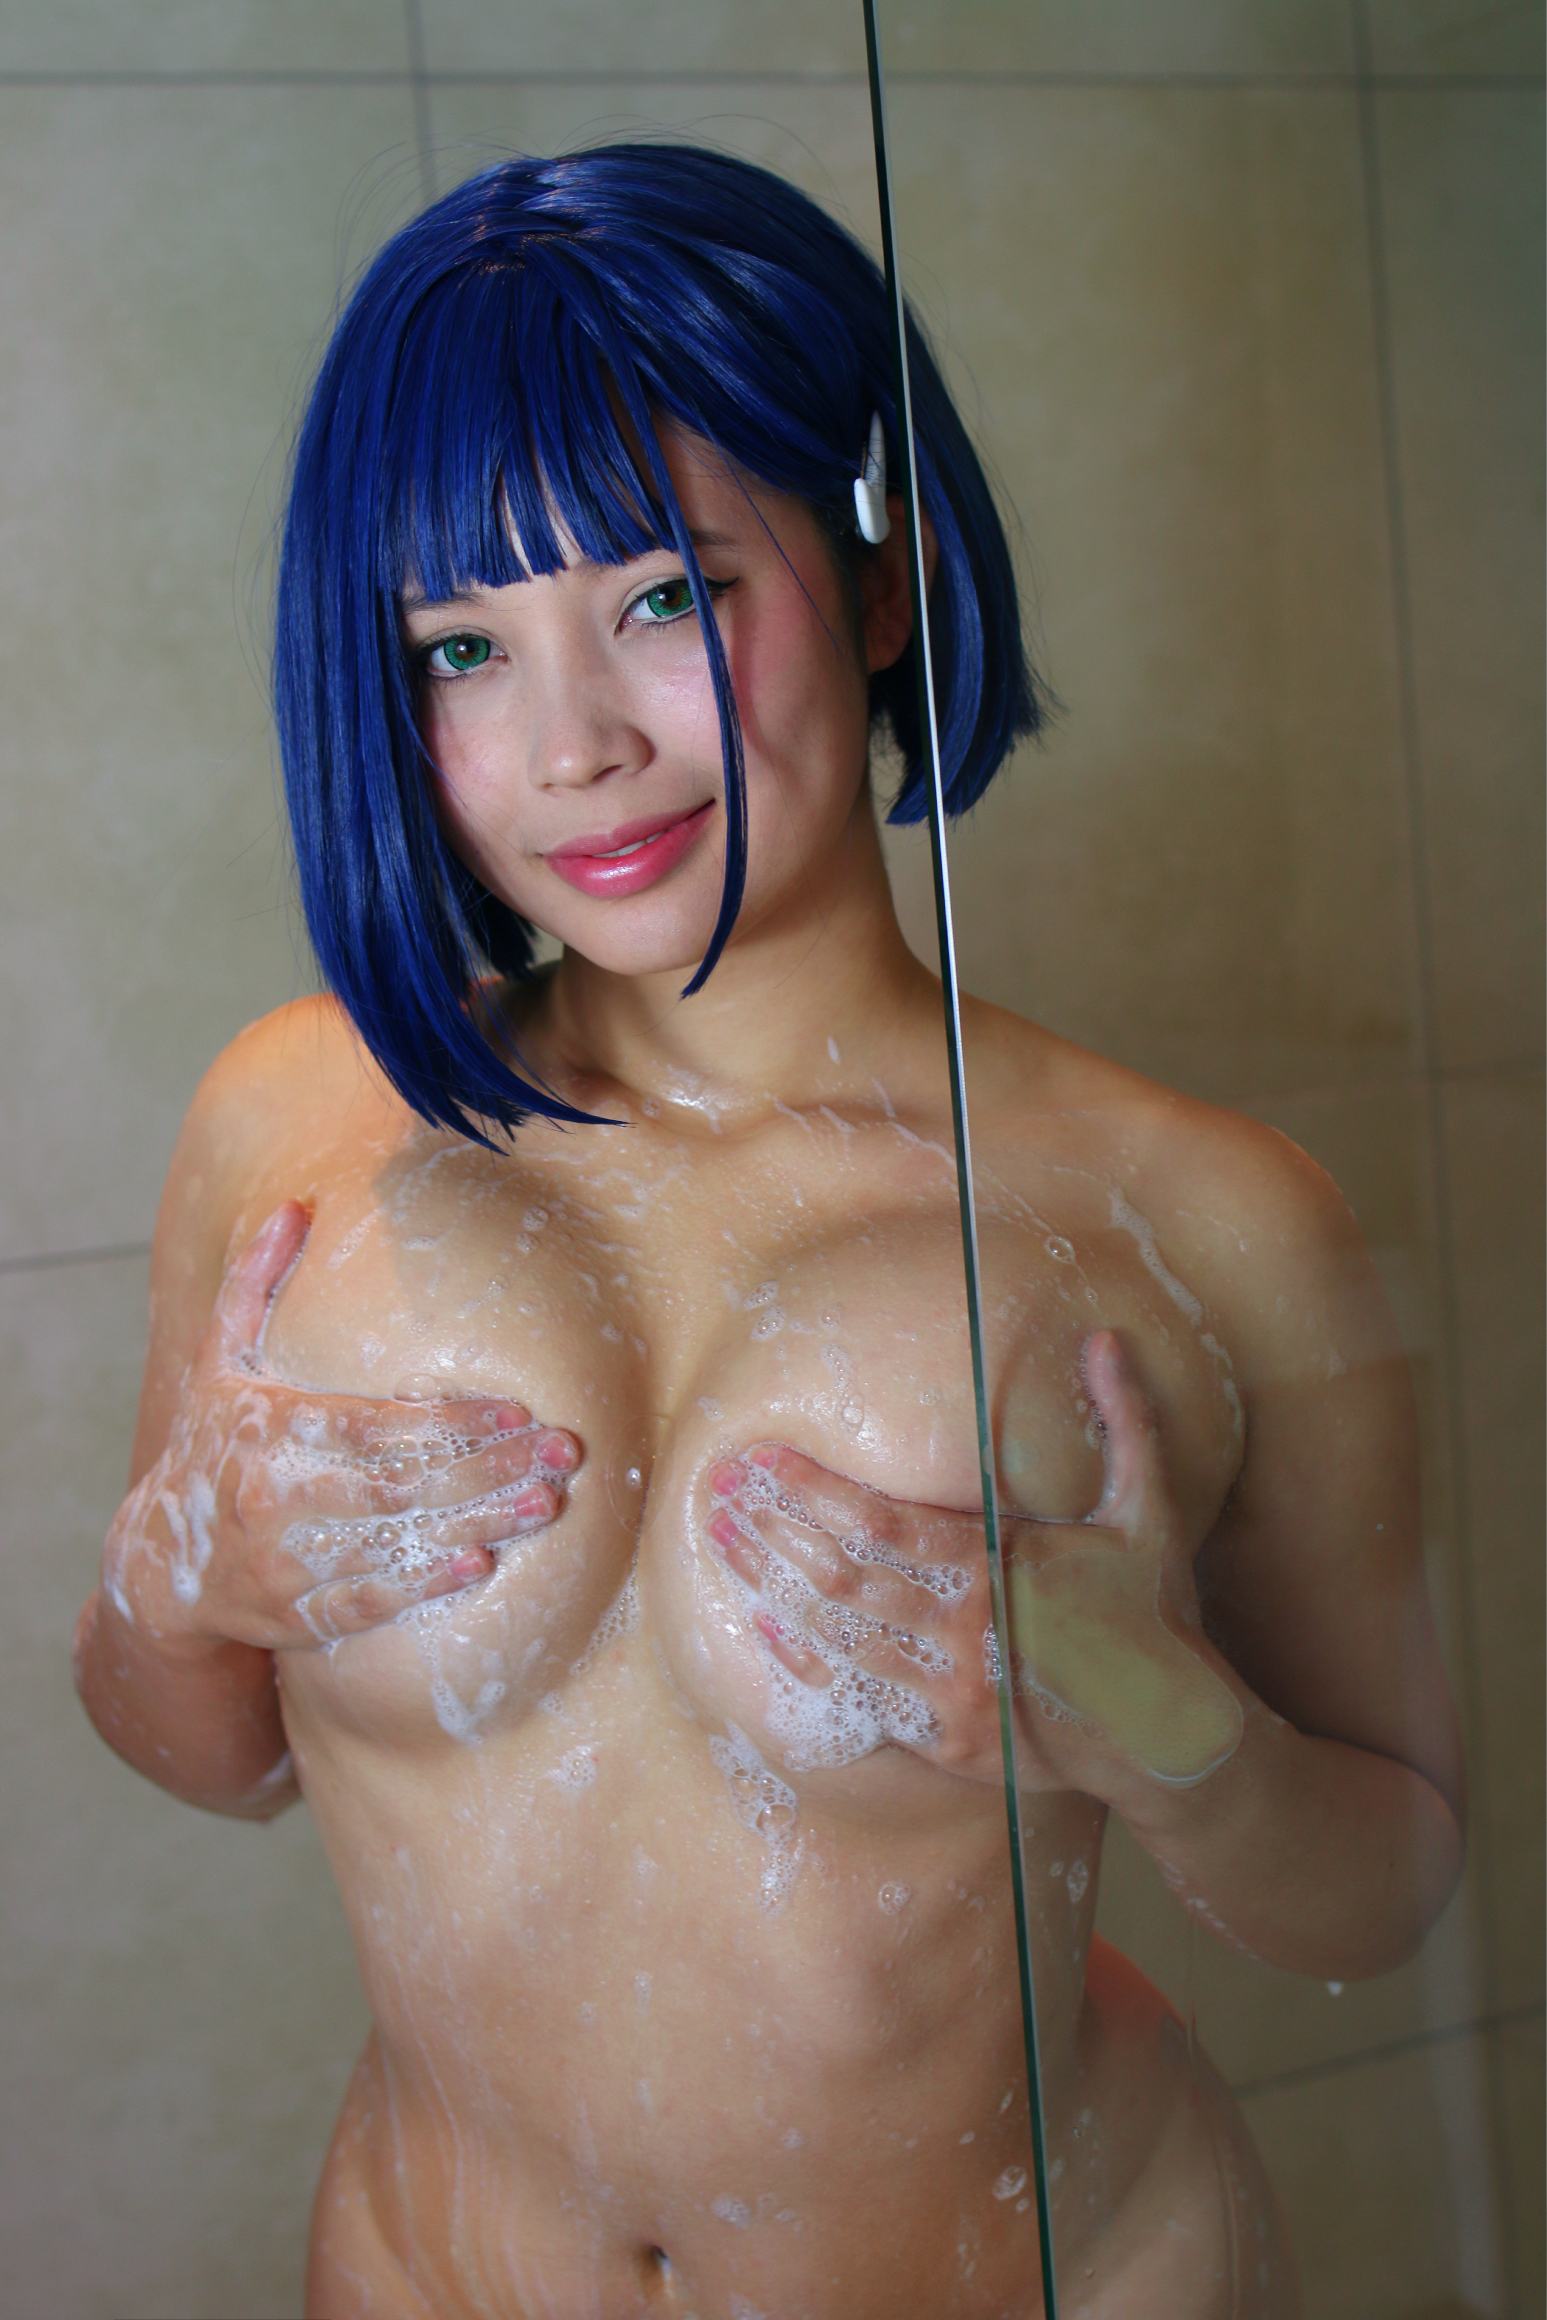 Ichigo Taking A Shower ;)